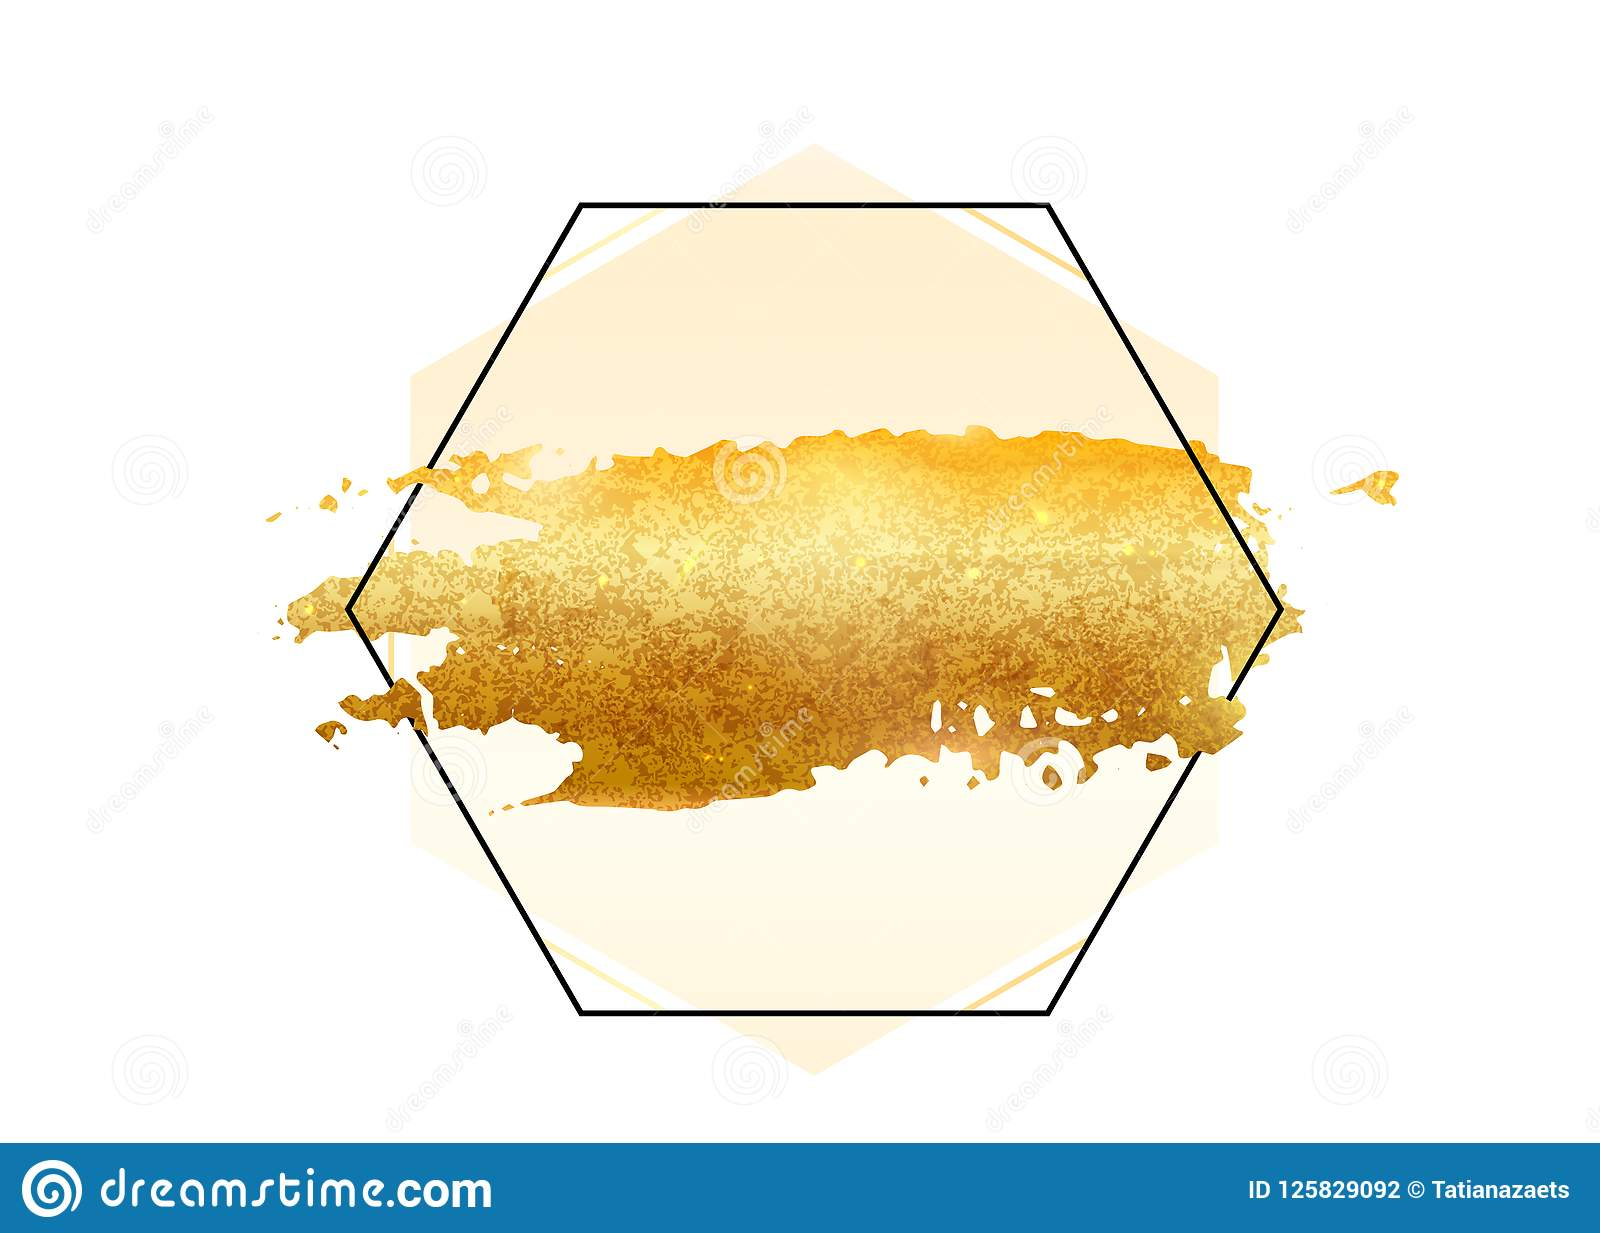 8ccf63af648c Royalty-Free Vector. Gold glitter foil brush stroke vector. Golden paint  smear with hexagon border frame isolated on